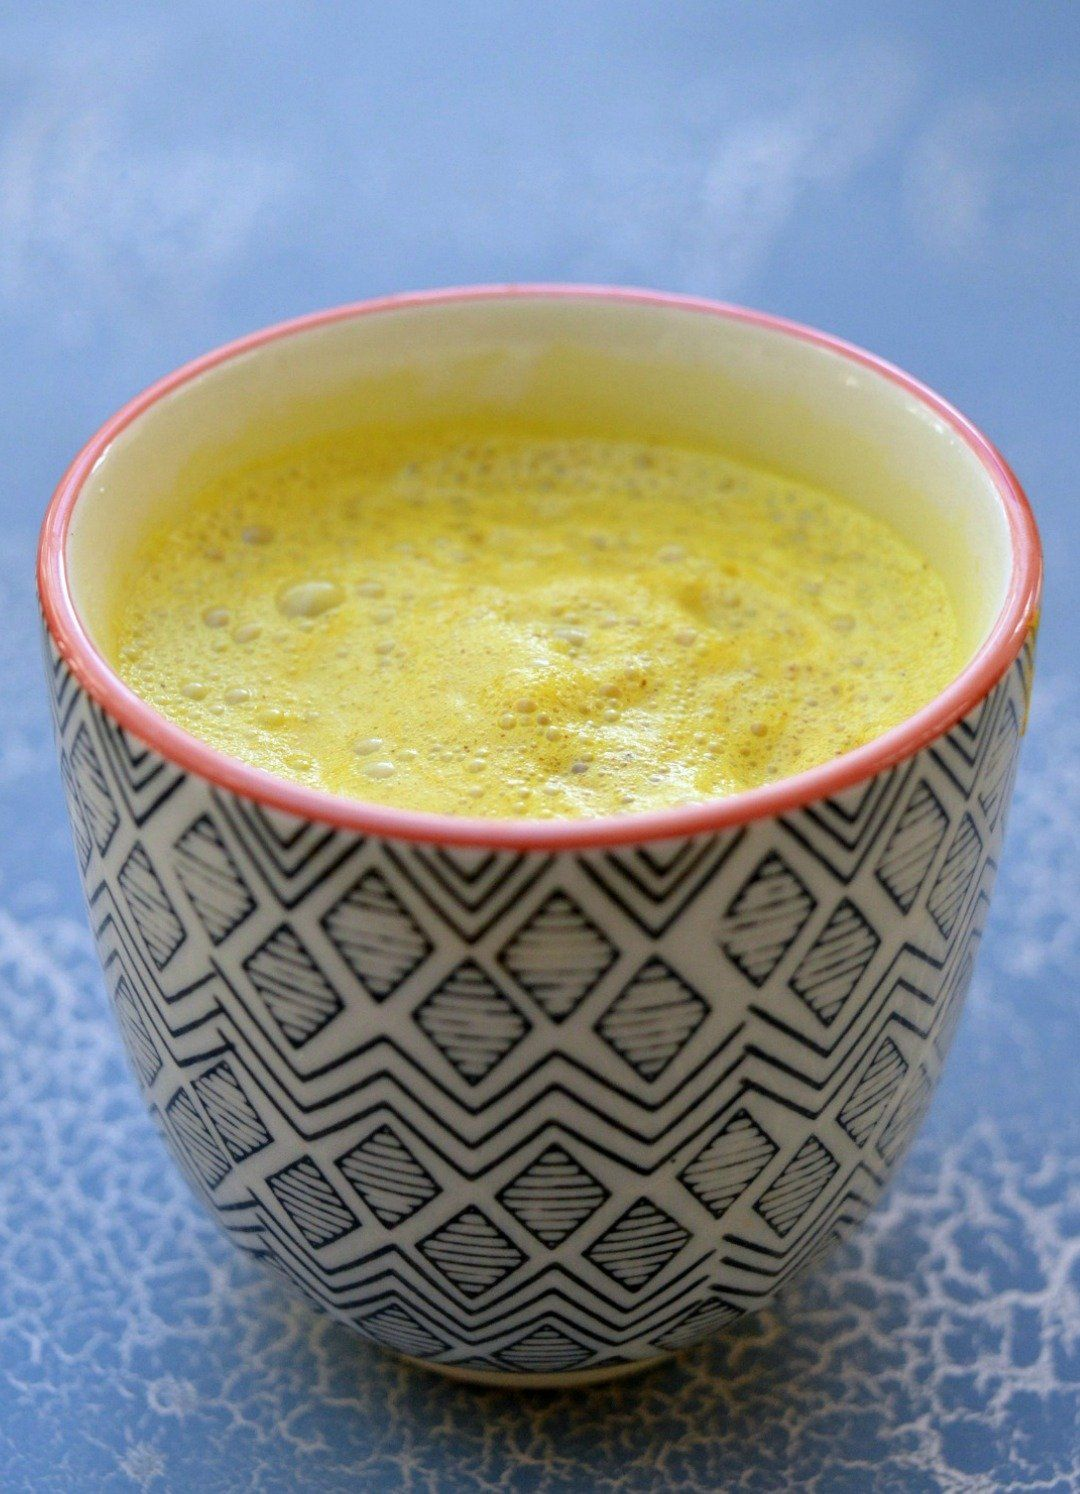 Turmeric Golden Milk or Turmeric Latte seems to be the latest drink to be popping up in cafes all over town. Bursting with nutritional benefits this healthy